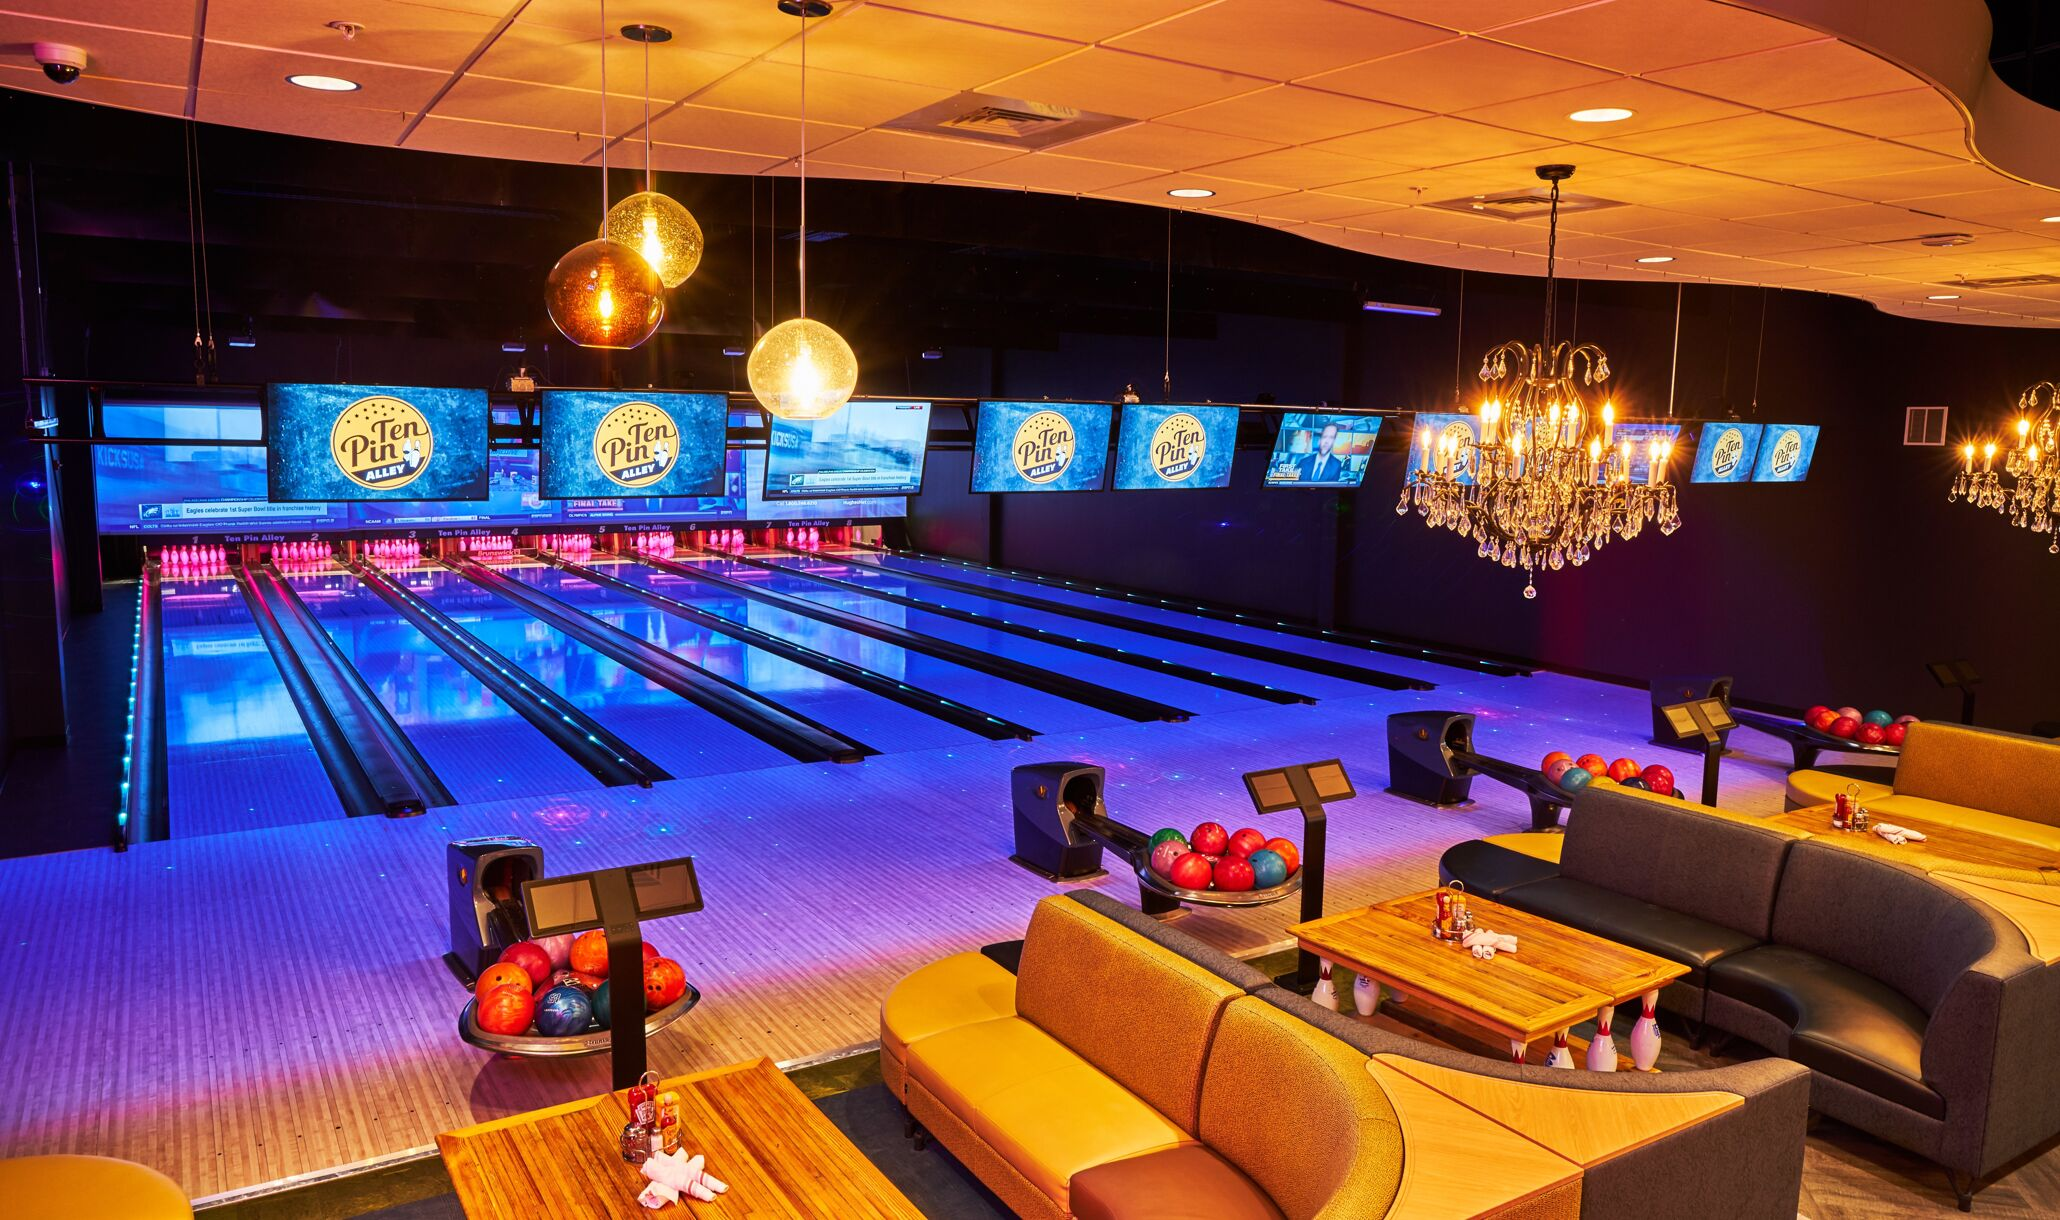 Ten Pin Alley Oh Vip 20180208 9389-1